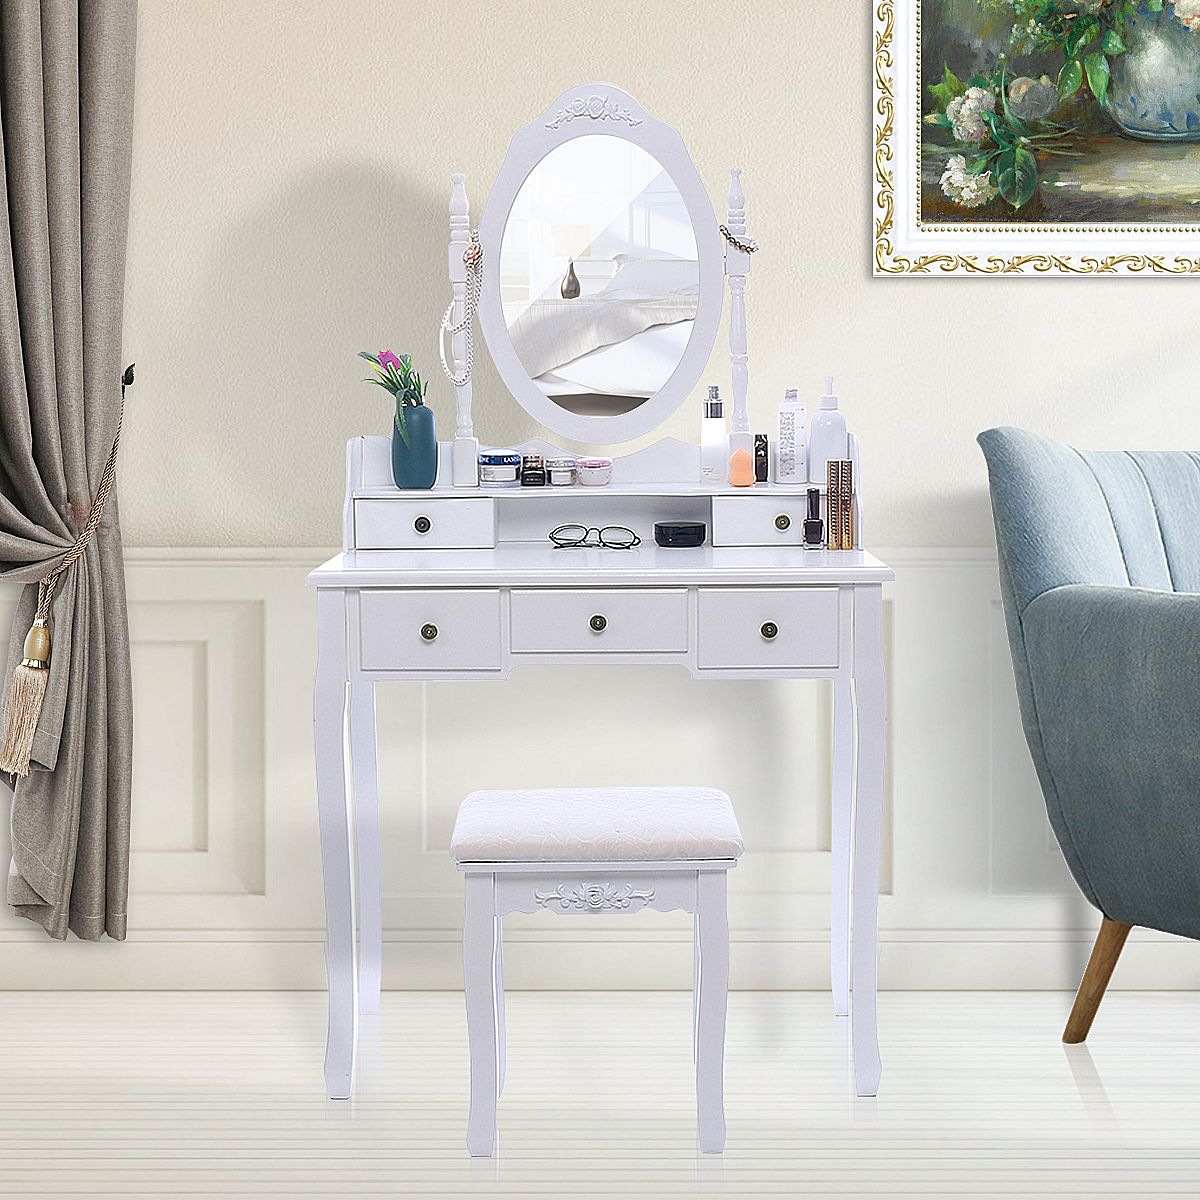 Vanity Wood Makeup Dressing Table Stool Set Bathroom With Mirror 5 Drawers White In 2020 Dressing Table With Stool Sturdy Furniture Dressing Table Set